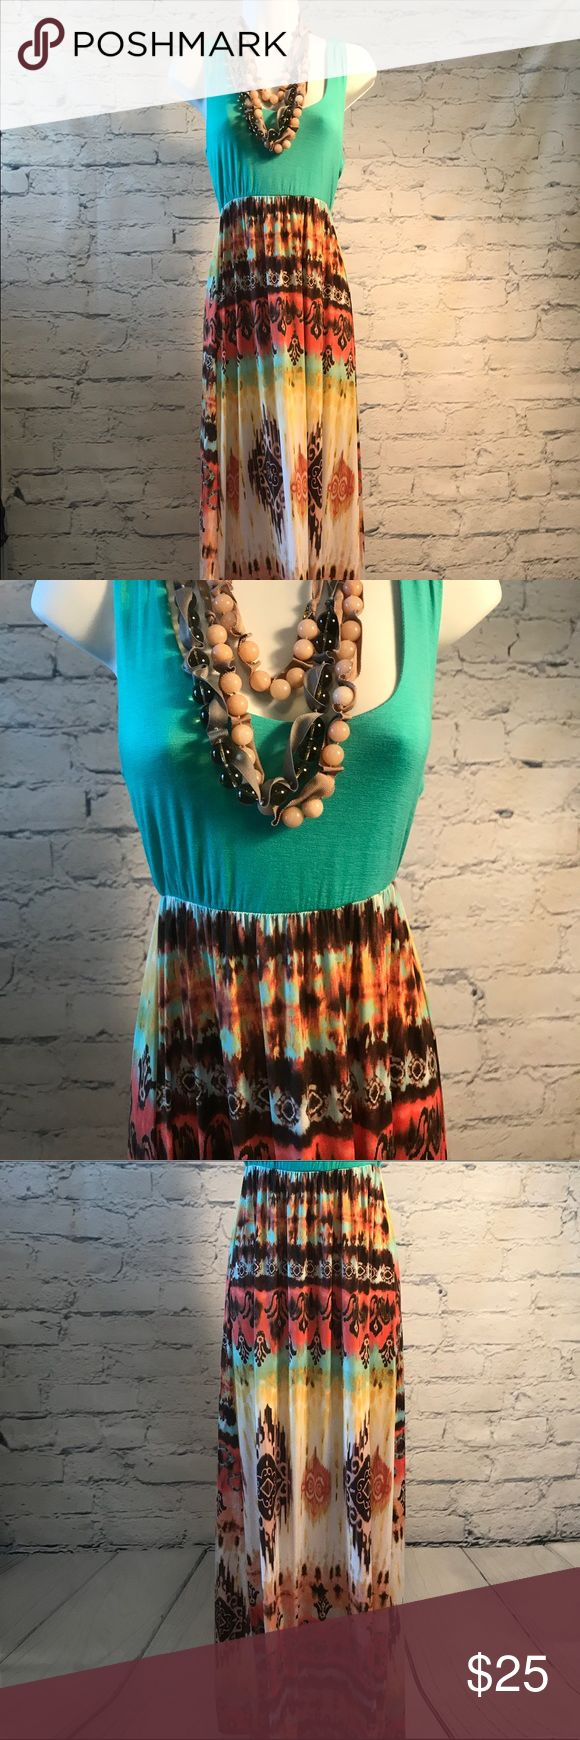 Summer Maxi Dress Turquoise Turquoise And Peach Tone Summer Maxi Dress NWT No Trades Dresses High Low